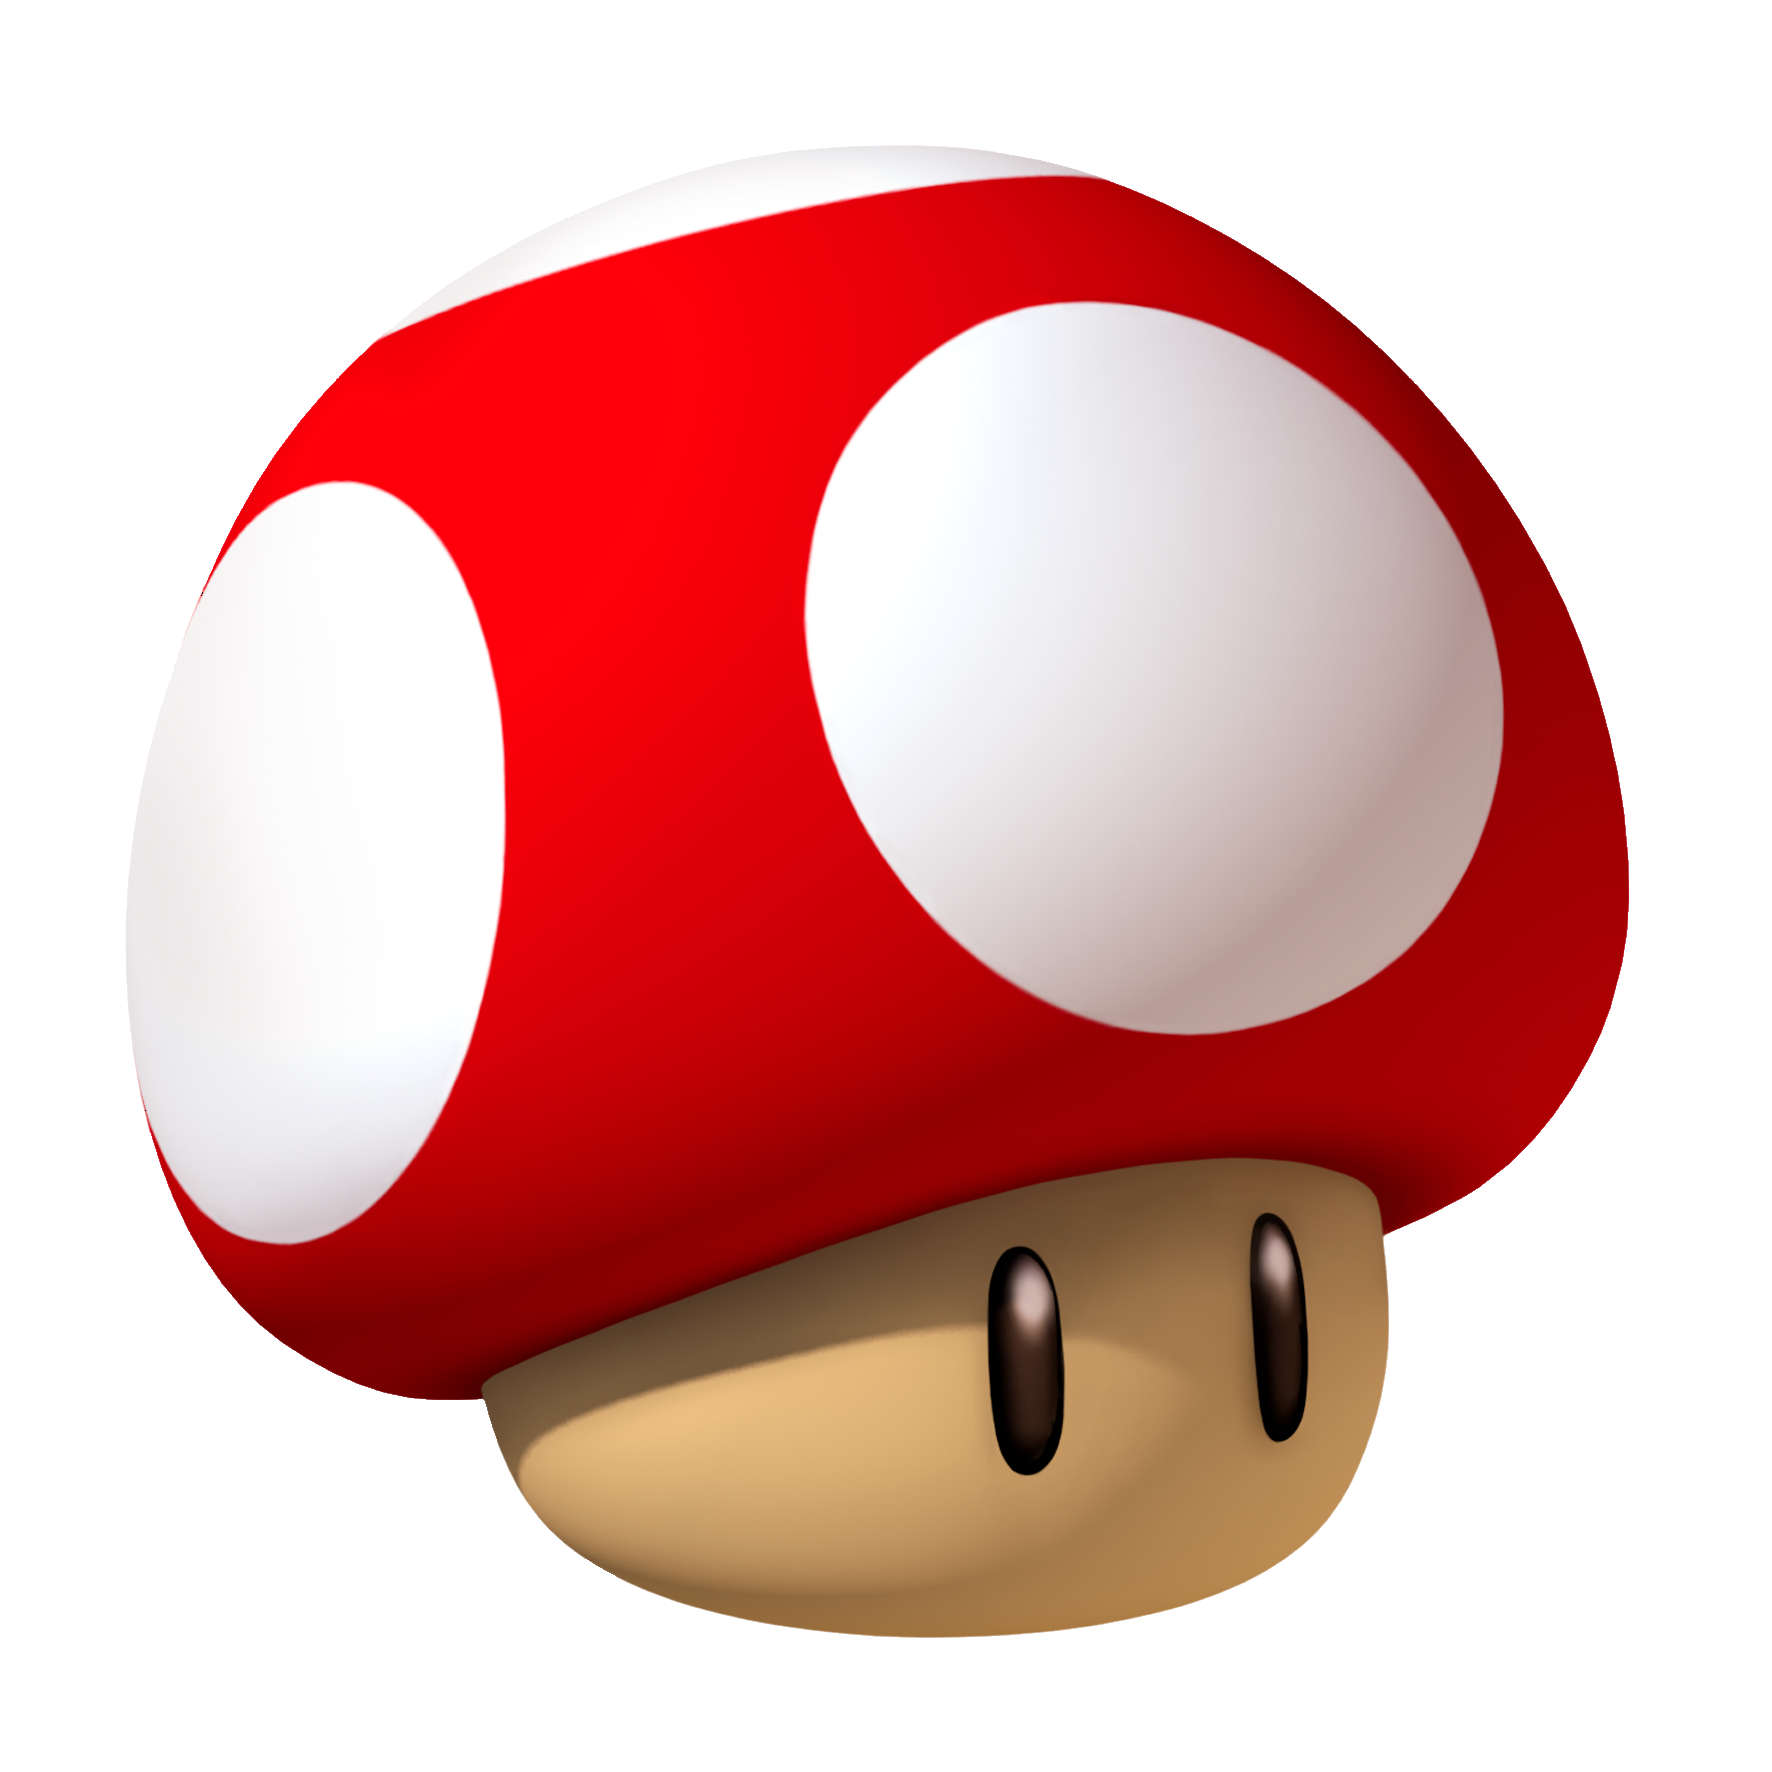 Super mario mushrooms gay